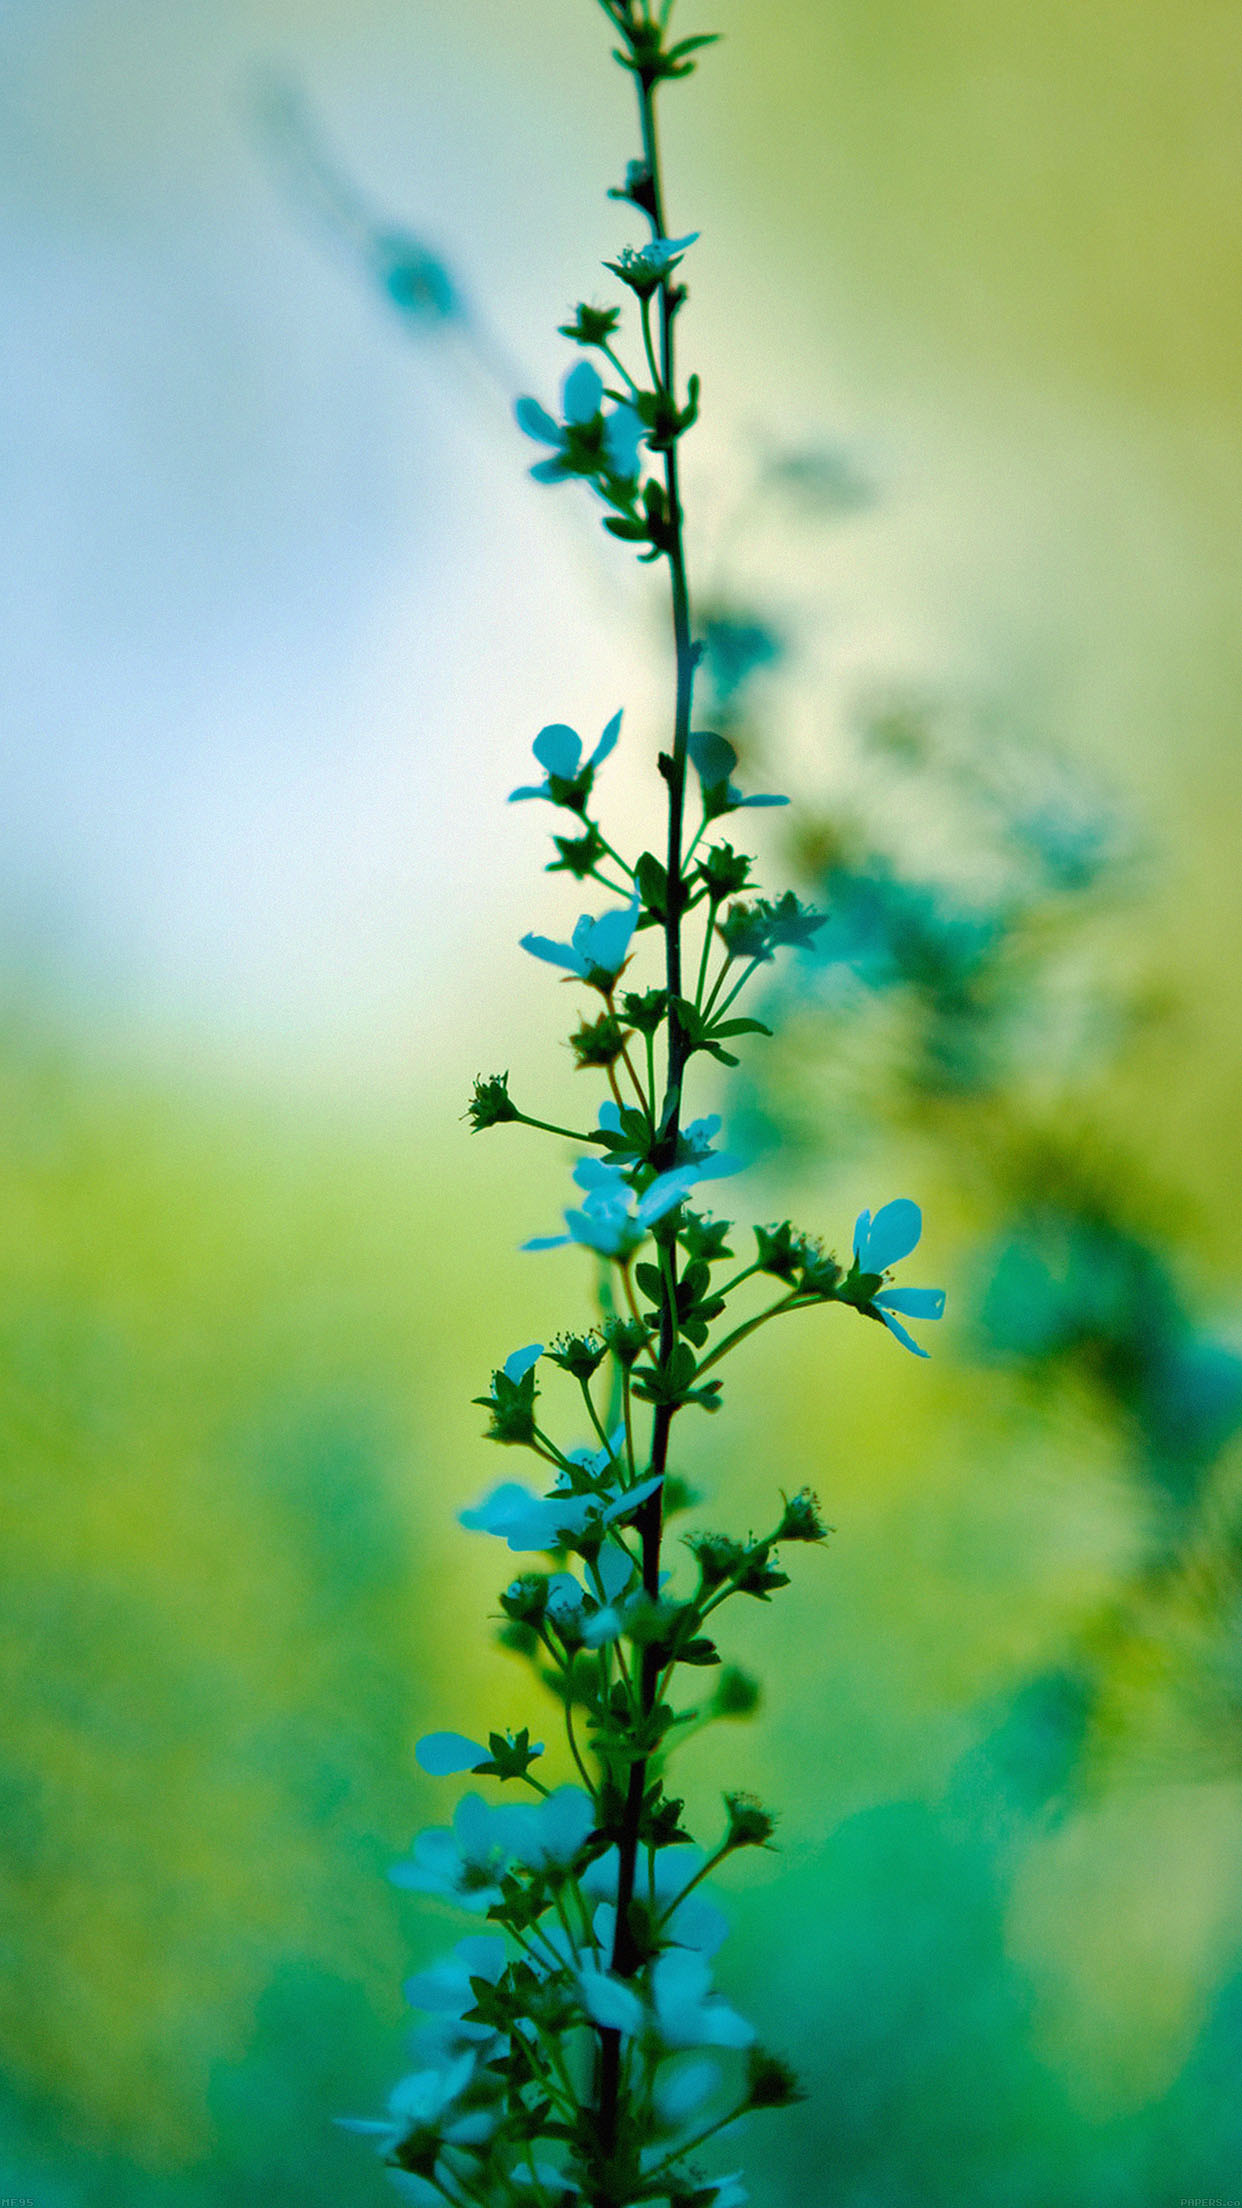 Blue Flower Day Bokeh Nature Android wallpaper